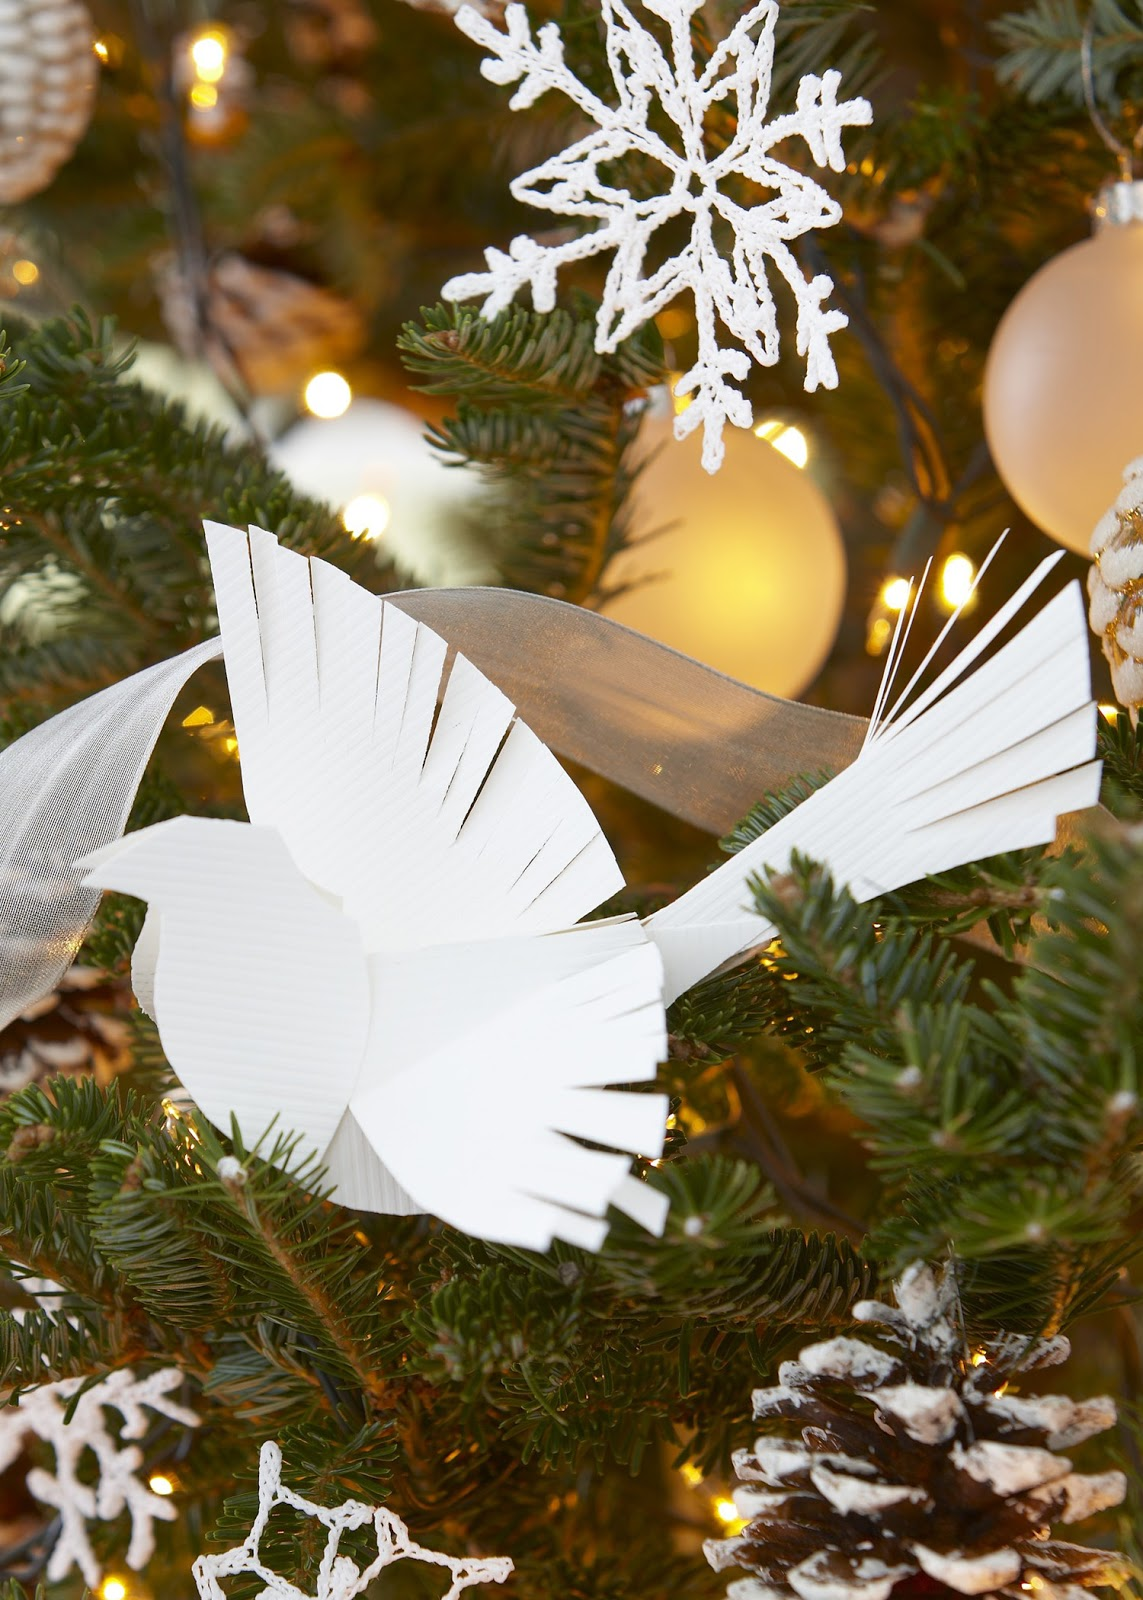 Karin Lidbeck 12 Day Countdown Making A Paper Bird Ornament